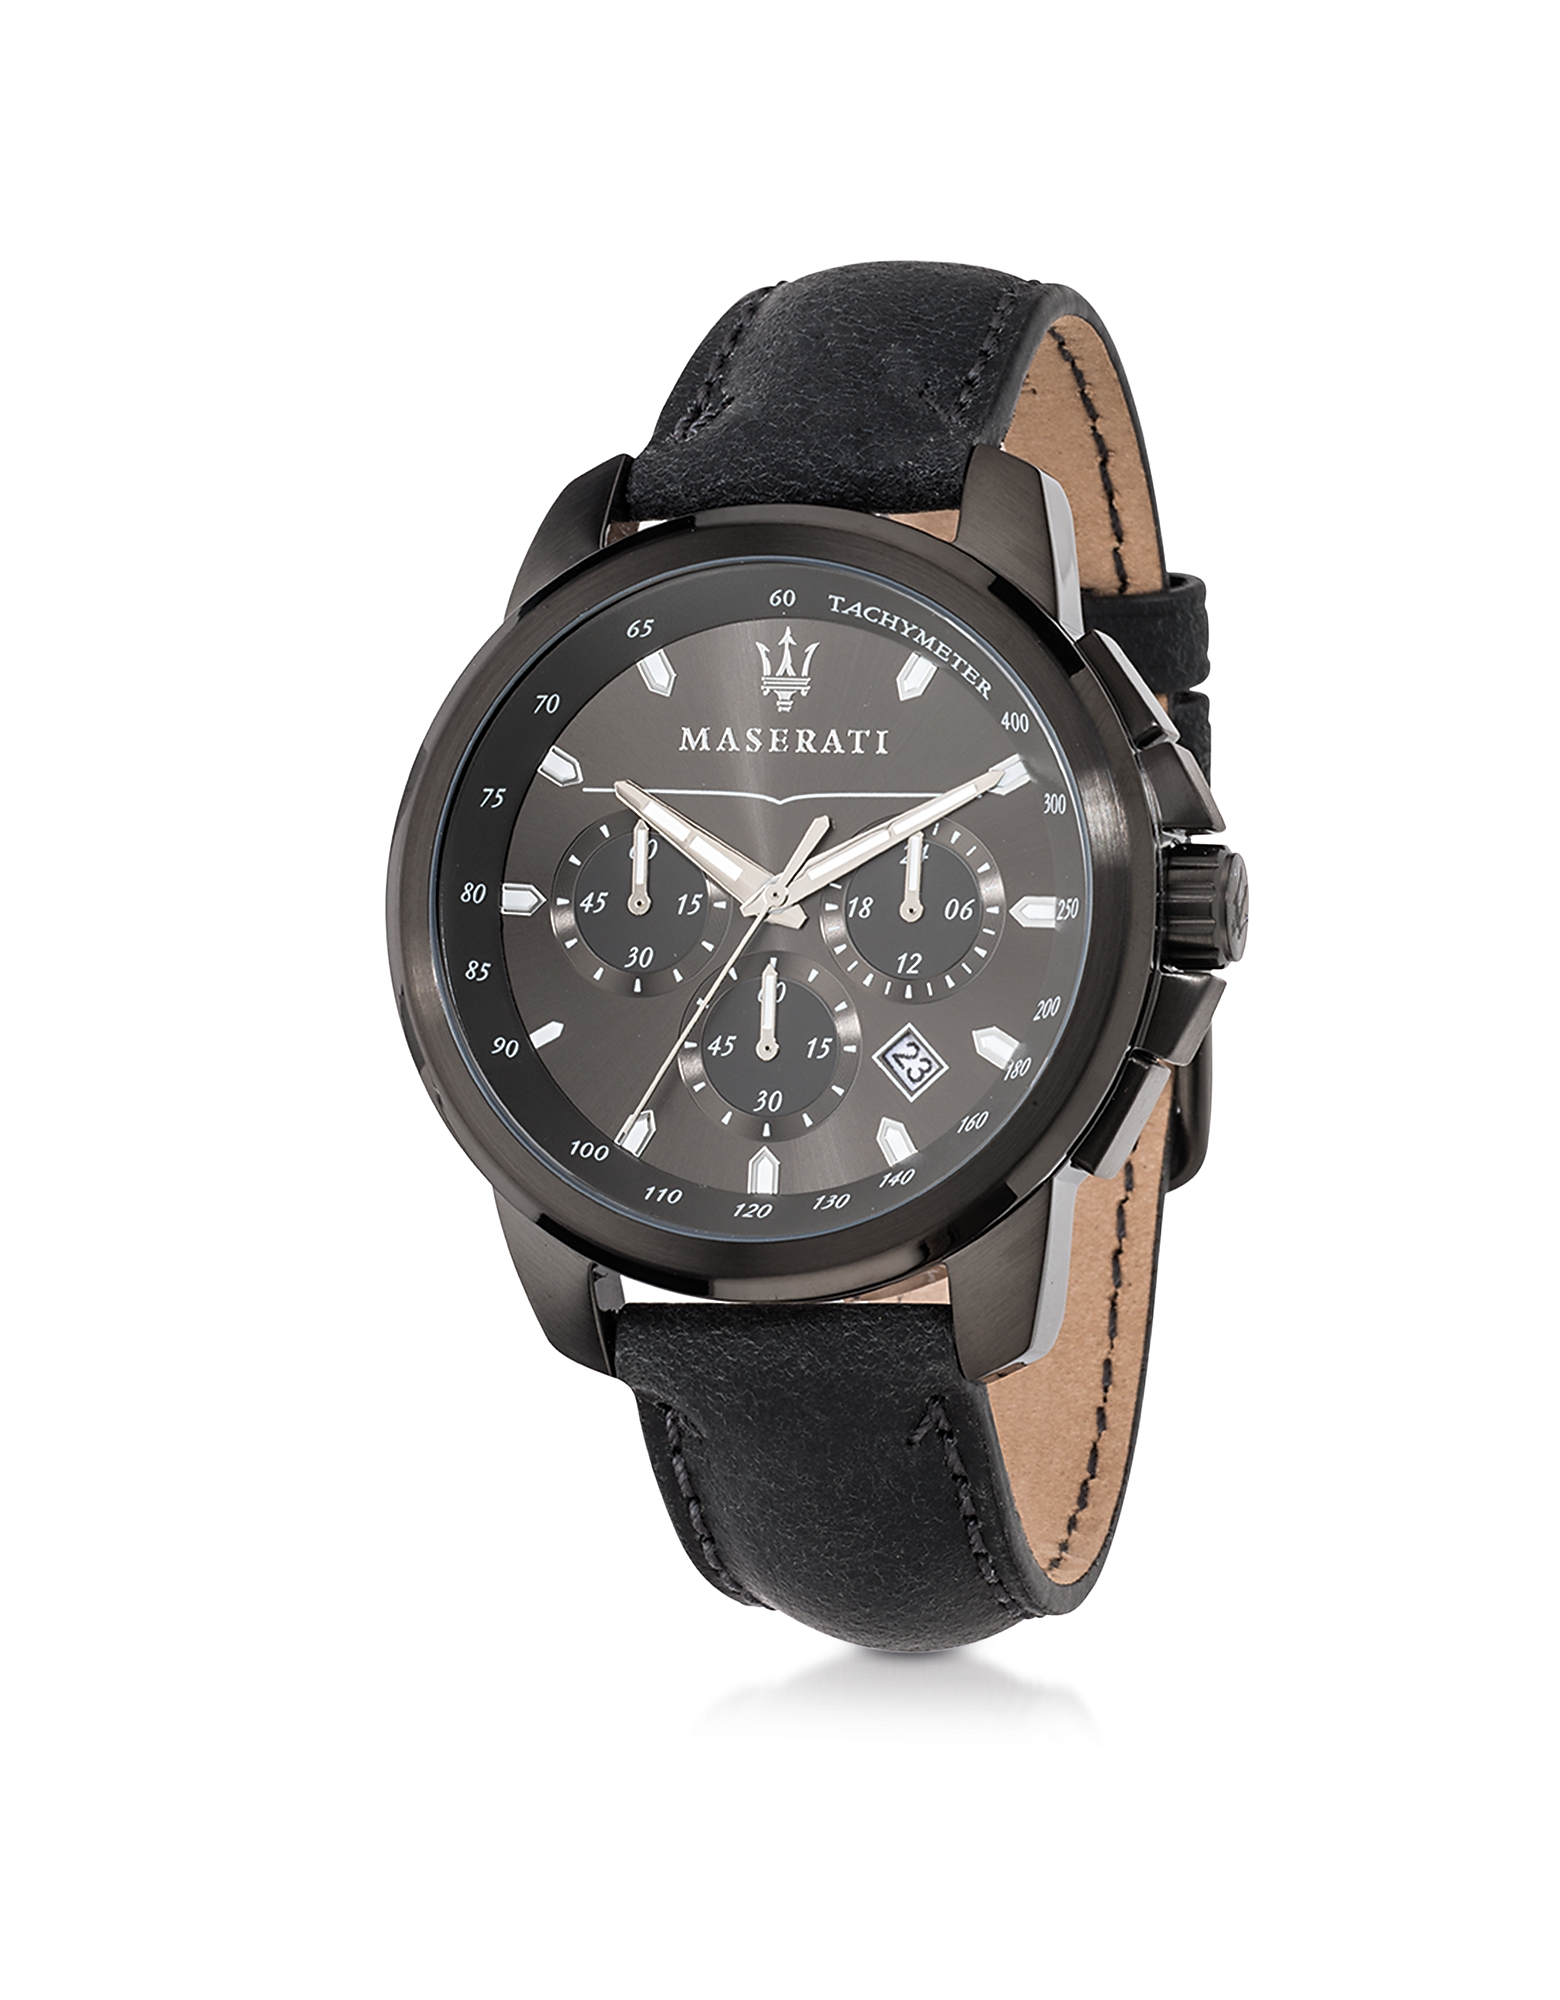 Maserati Men's Watches, Successo Black Stainless Steel Case and Leather Strap Men's Chrono Watch